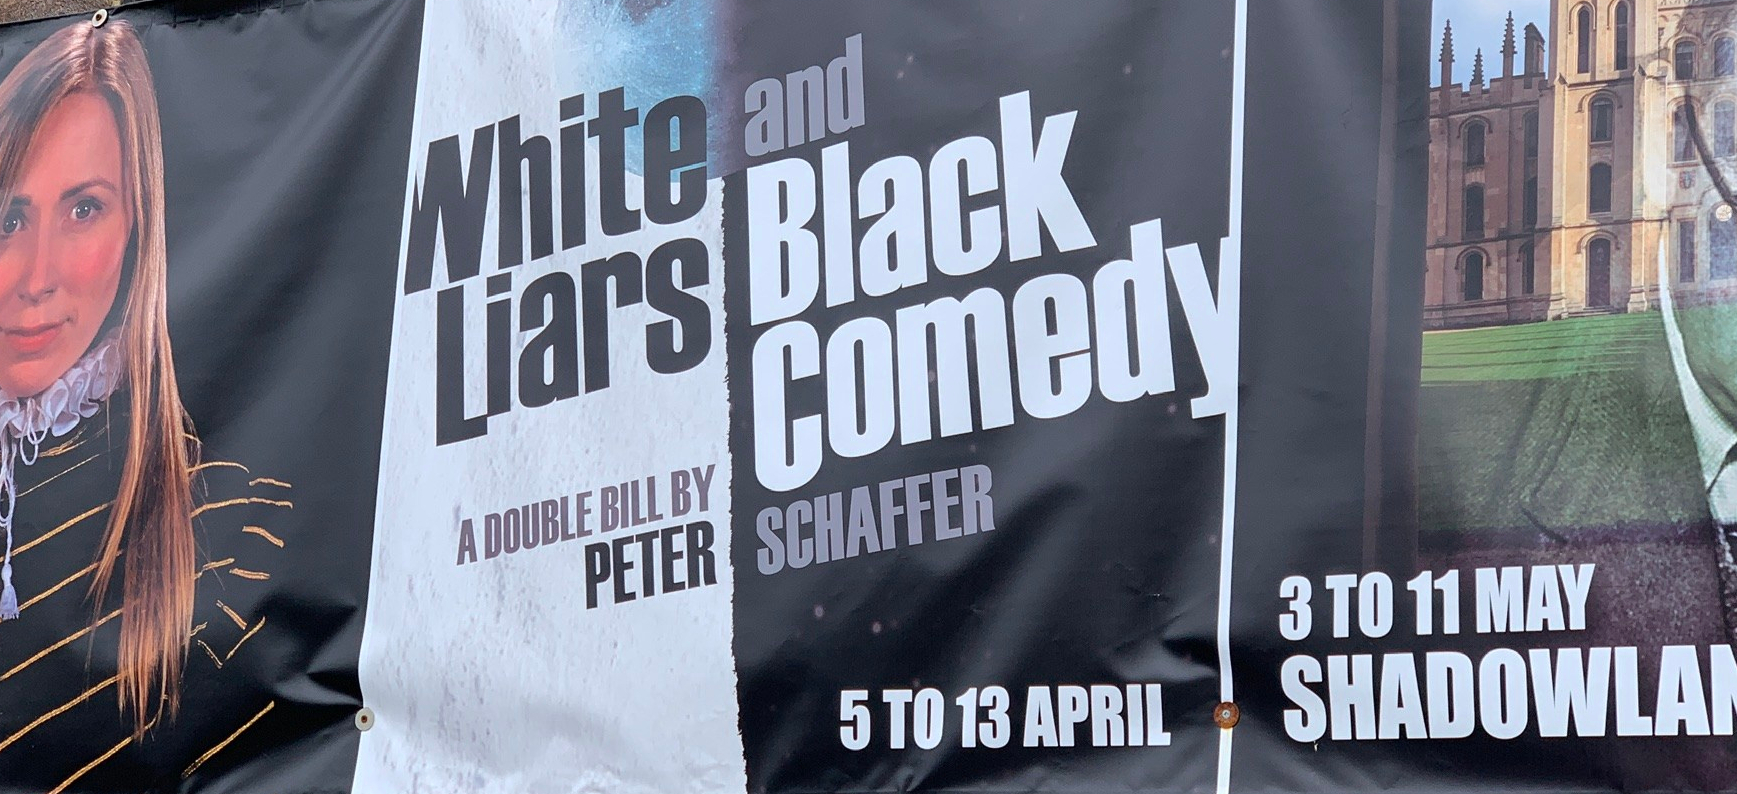 Coming up at The Stables – White Liars and Black Comedy